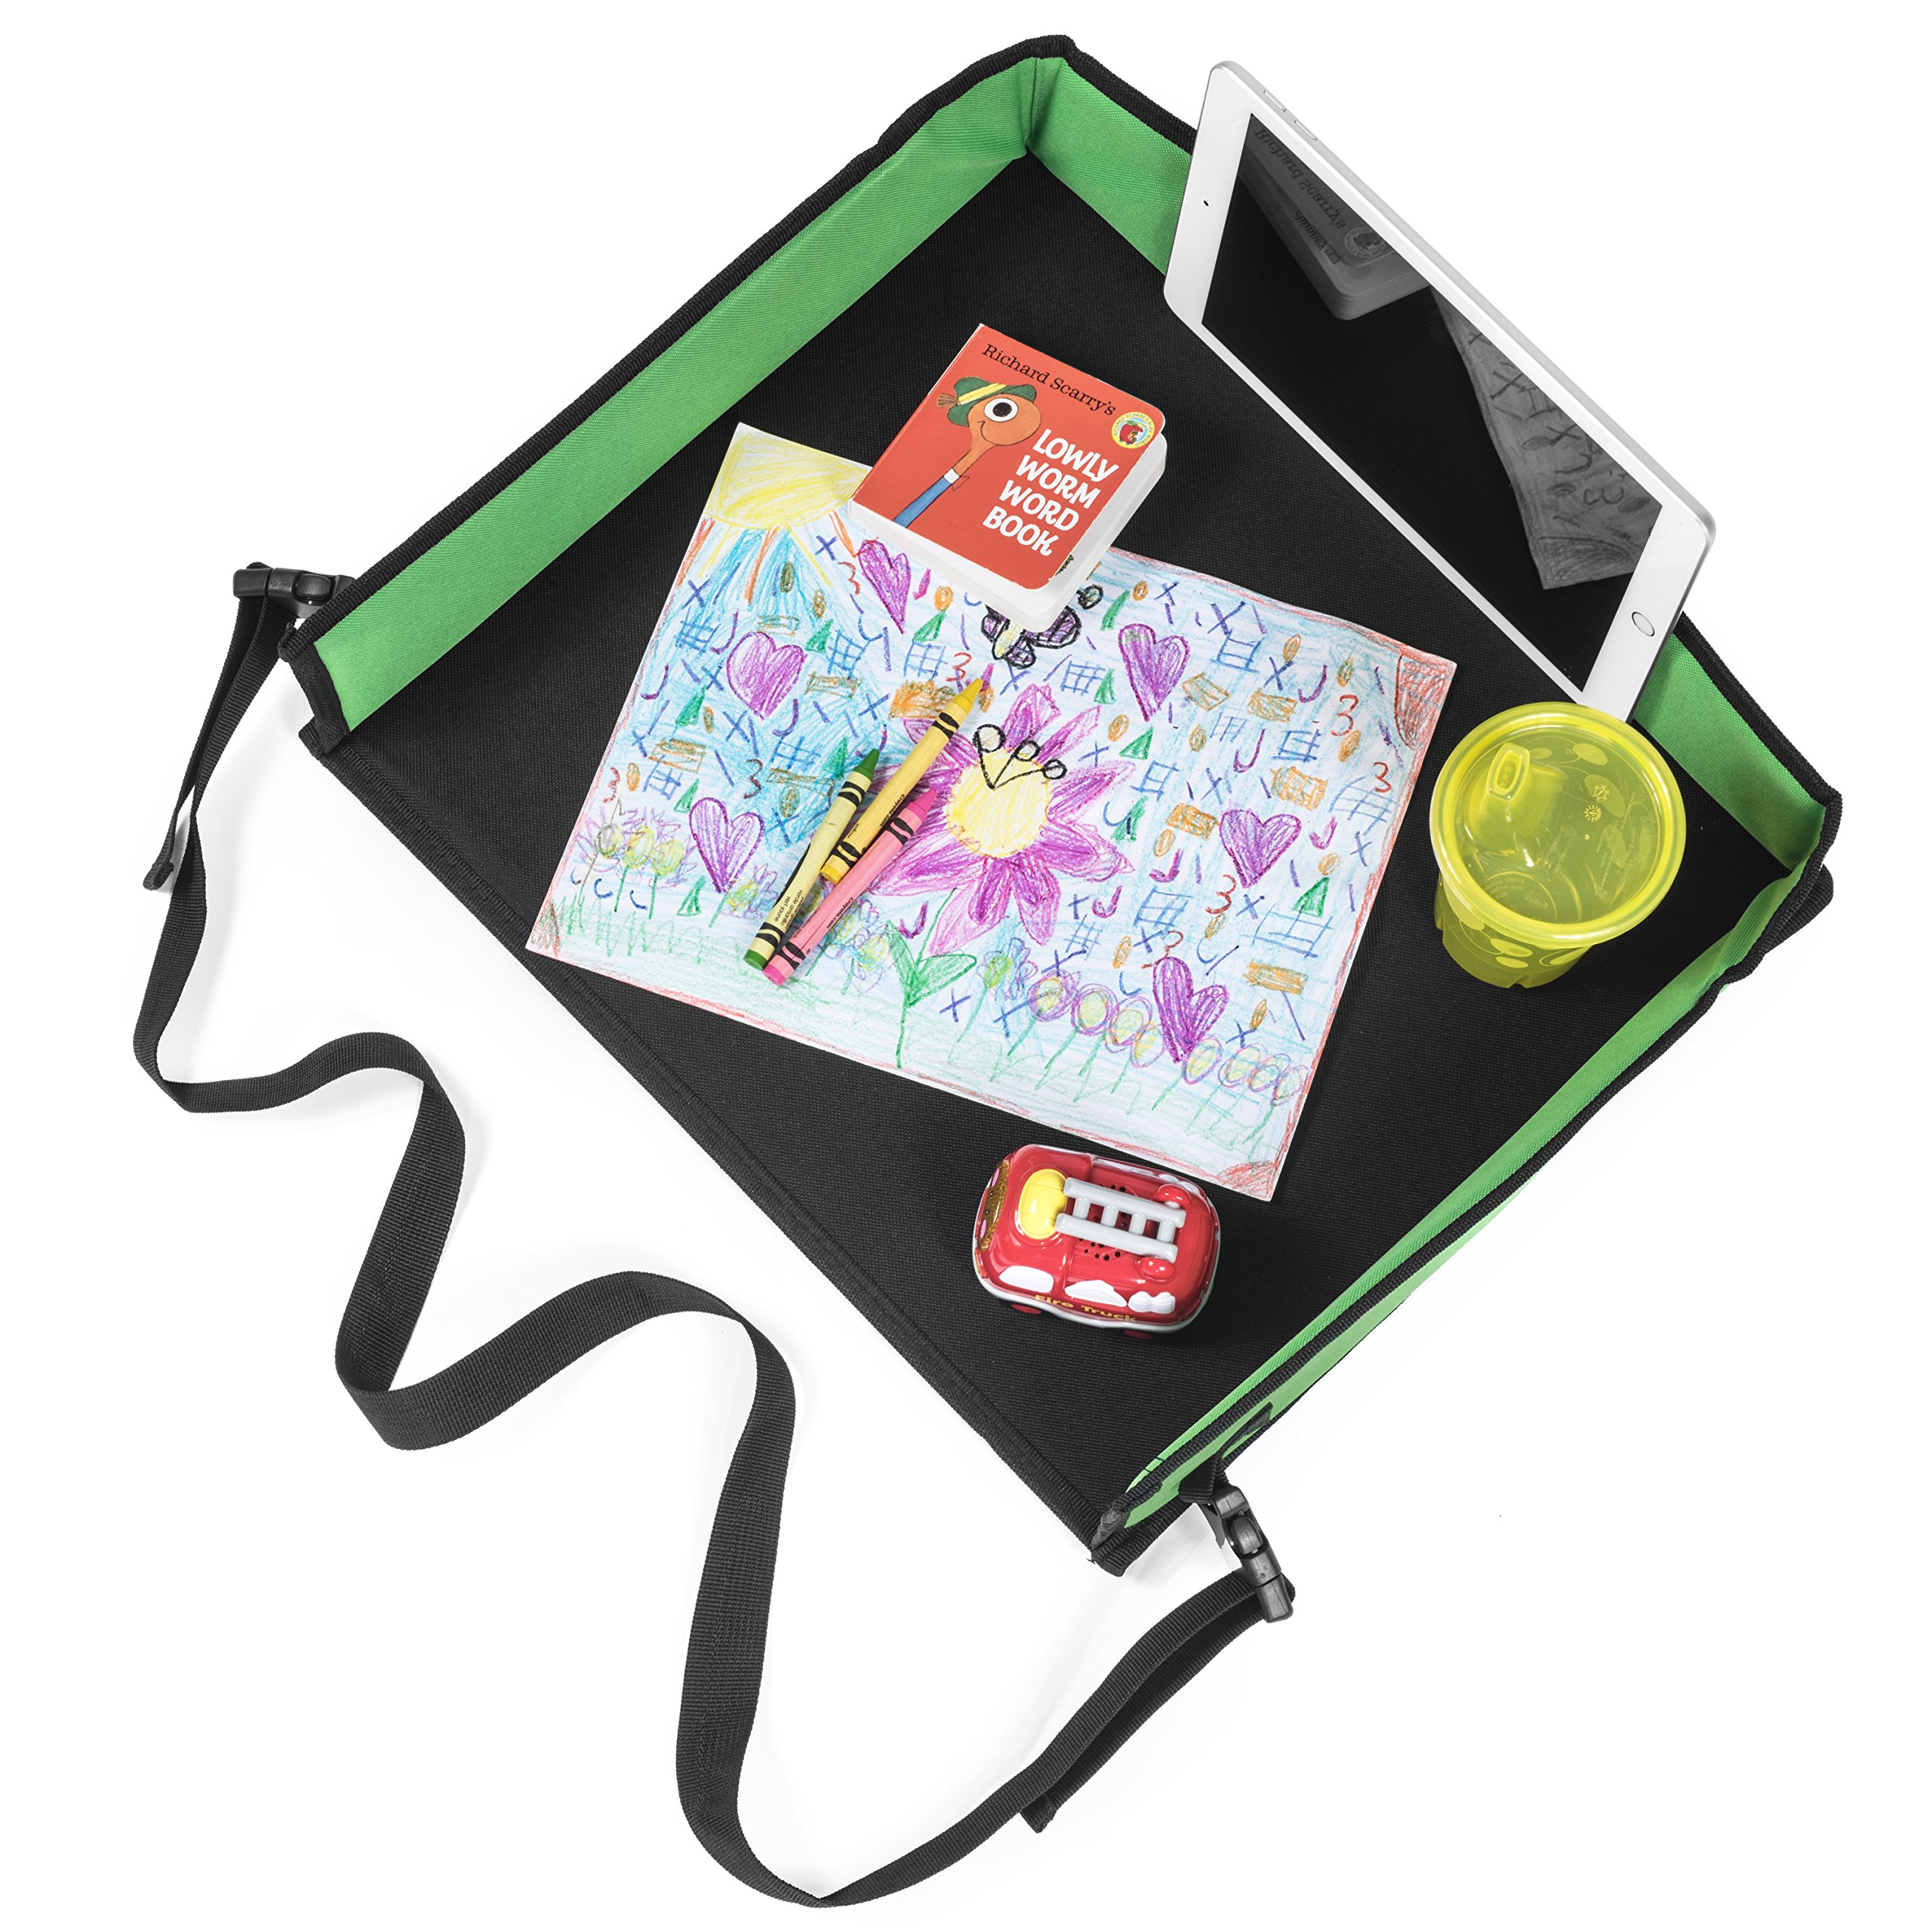 Batalee Kids Travel Tray for Car Toddlers Snack Play Activity Tray Portable Lap Tray with Mesh Pockets for Cars Seat, Strollers, Planes - Quality Material Tall Side Walls - Perfect Car Organizer by Batalee (Image #4)